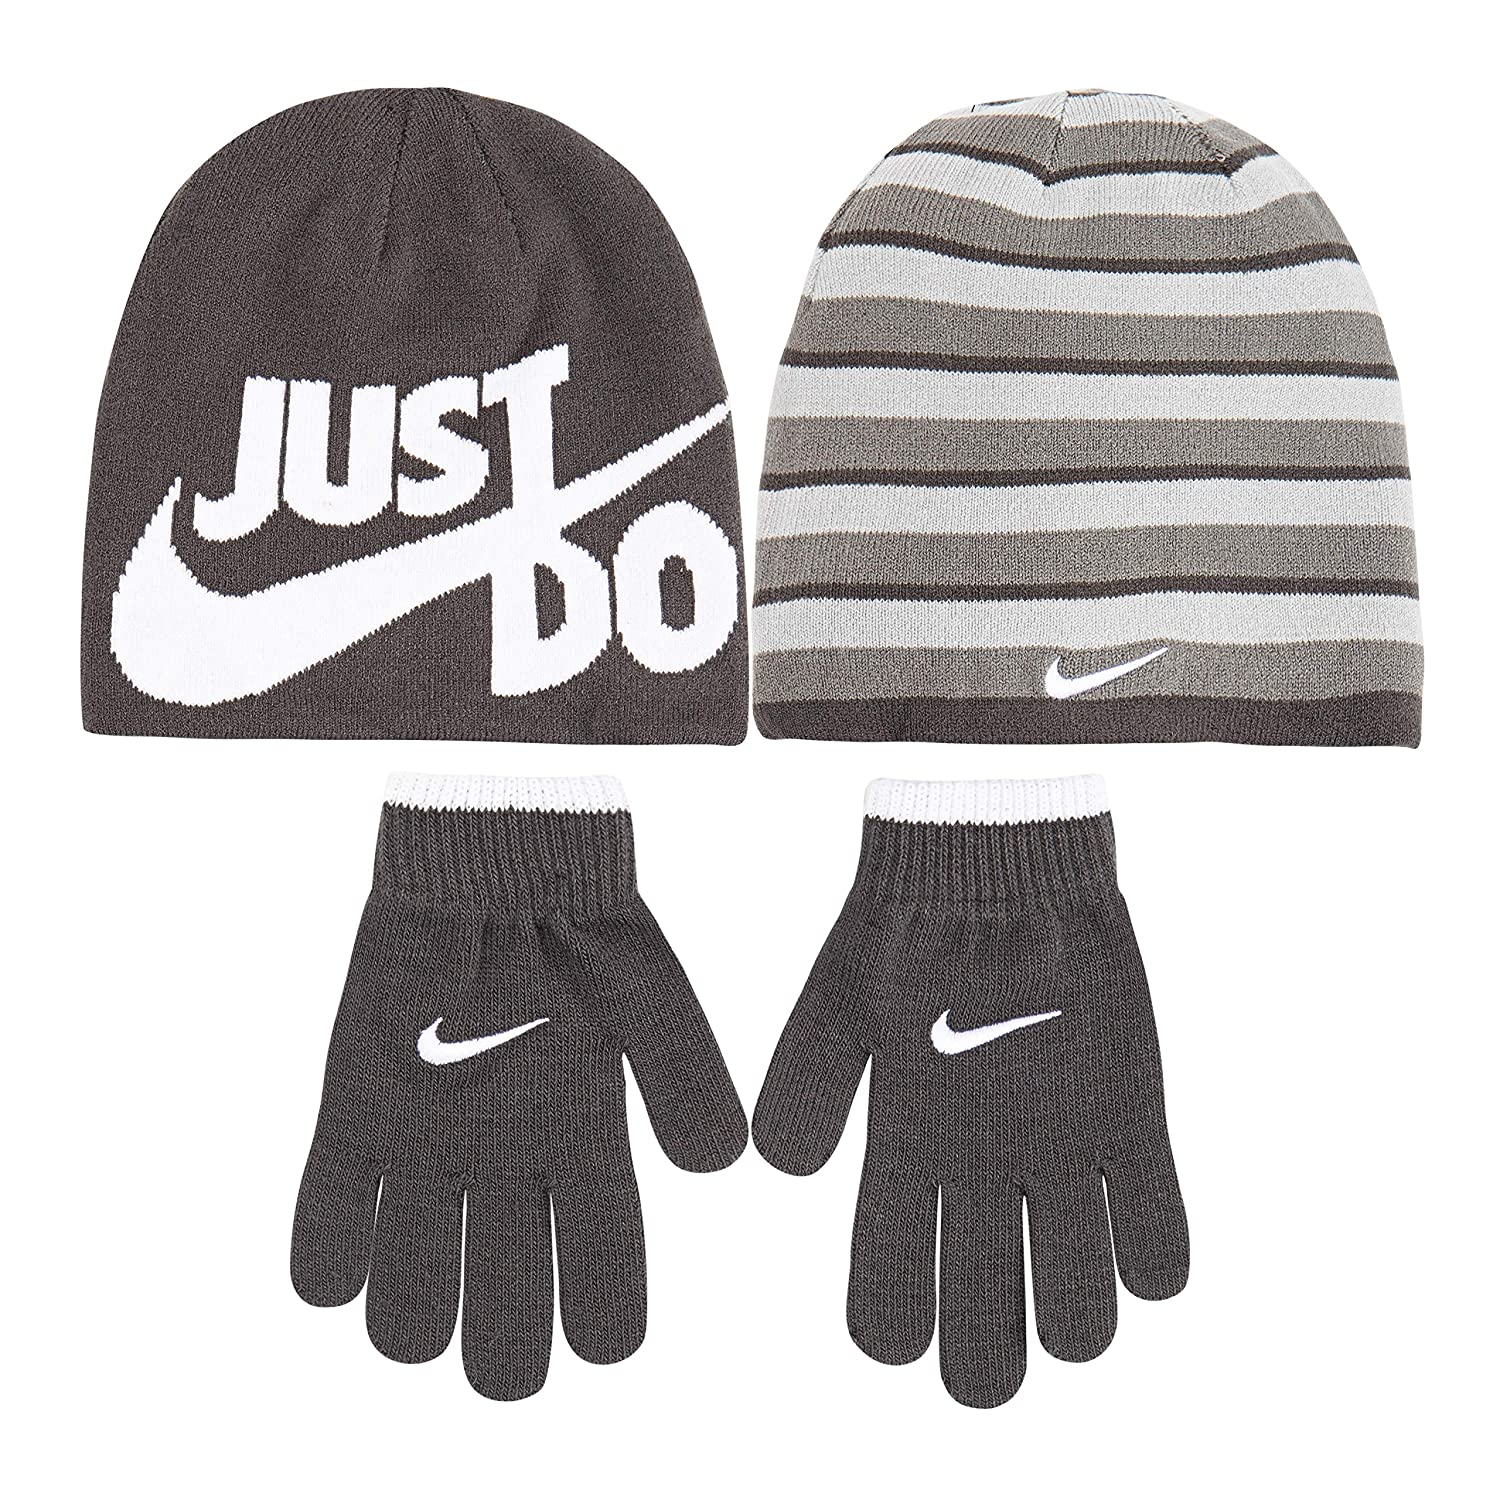 99607cb21 Amazon.com: NIKE Children's Apparel Kids' Little Beanie and Glove ...